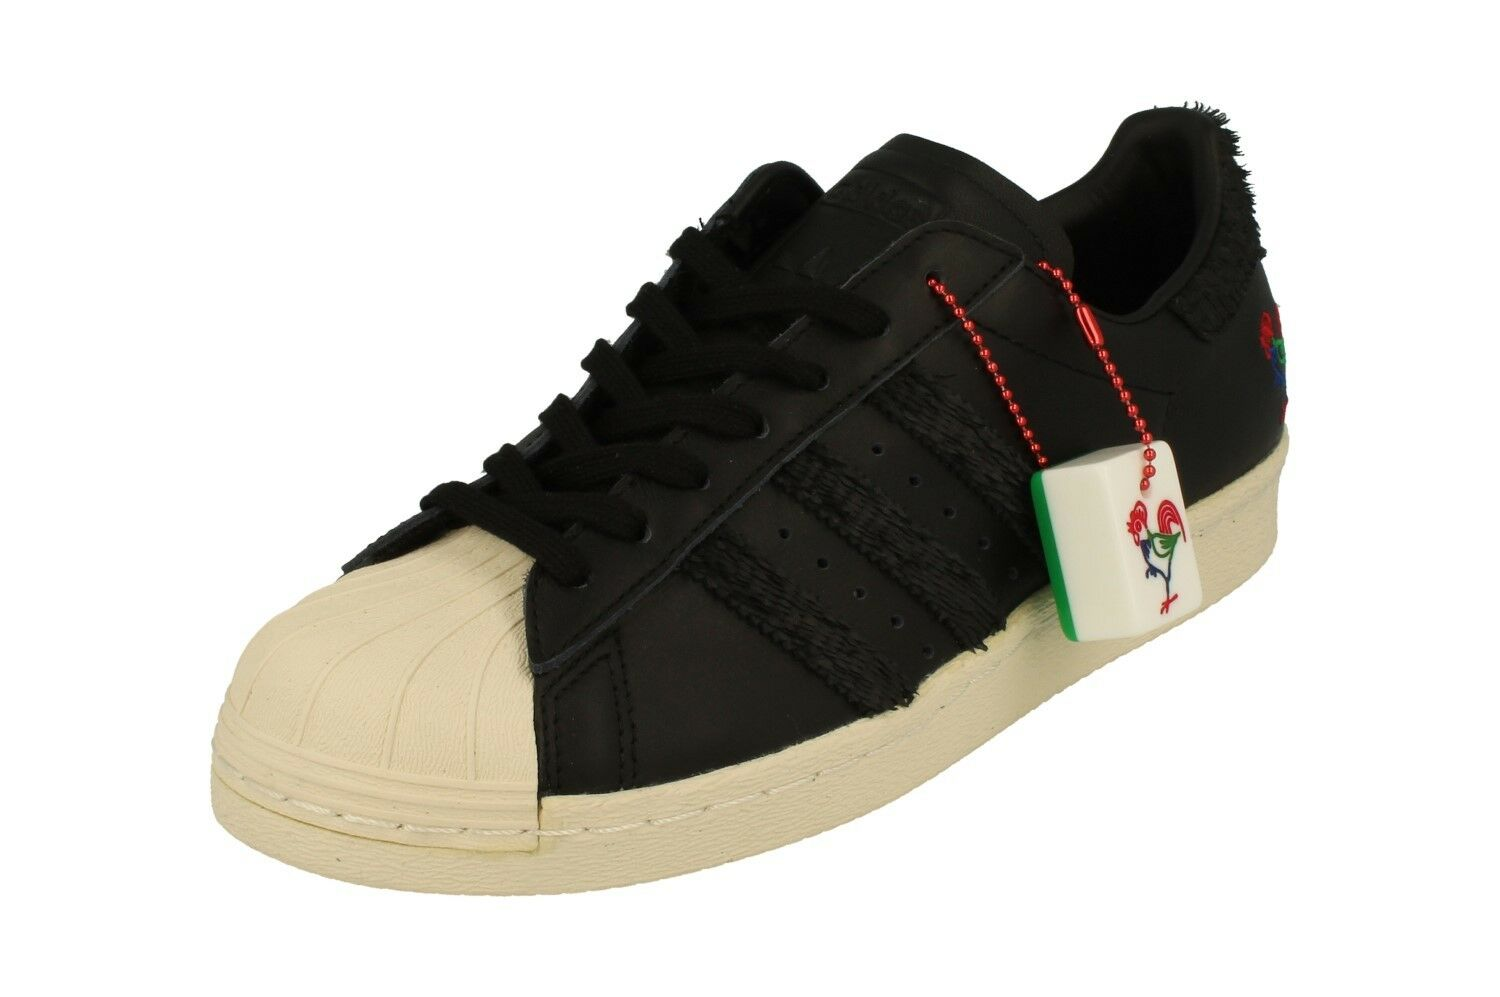 Adidas Originals Mens Superstar 80S Cny Trainers Sneakers BA7778 Shoes